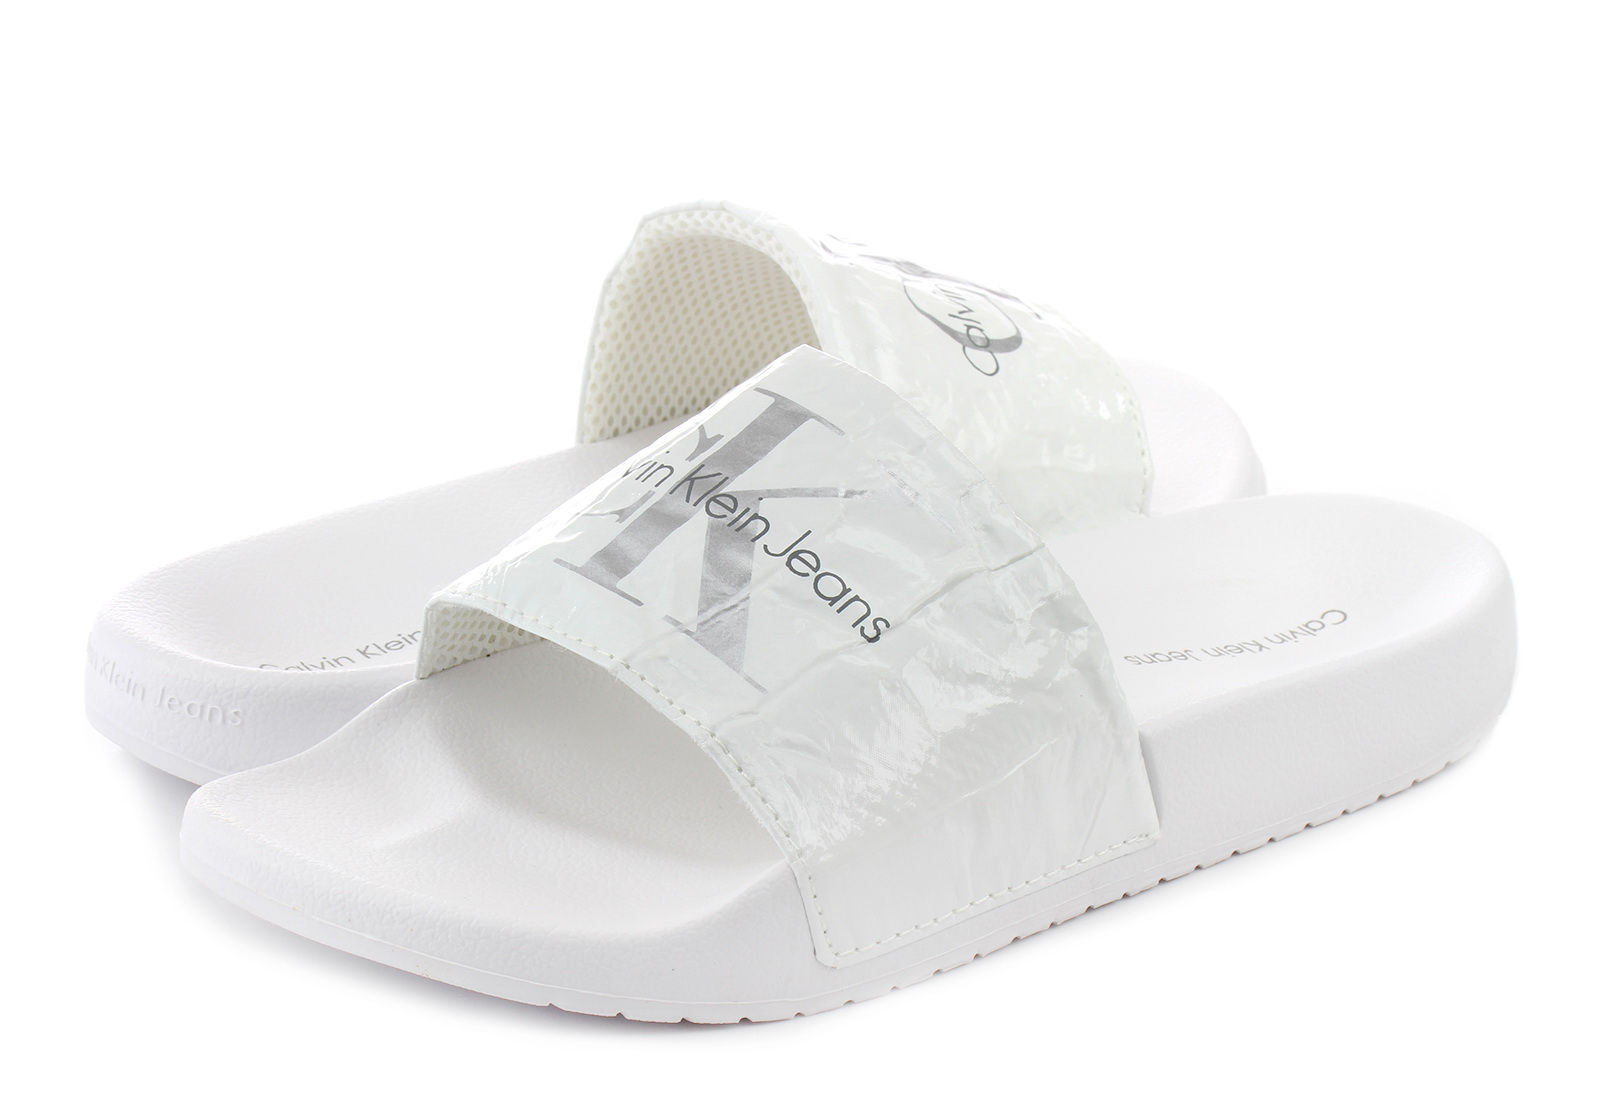 Calvin Klein Jeans Papucs - Chantal - RE9855-wht - Office Shoes ... 2dda0b658d